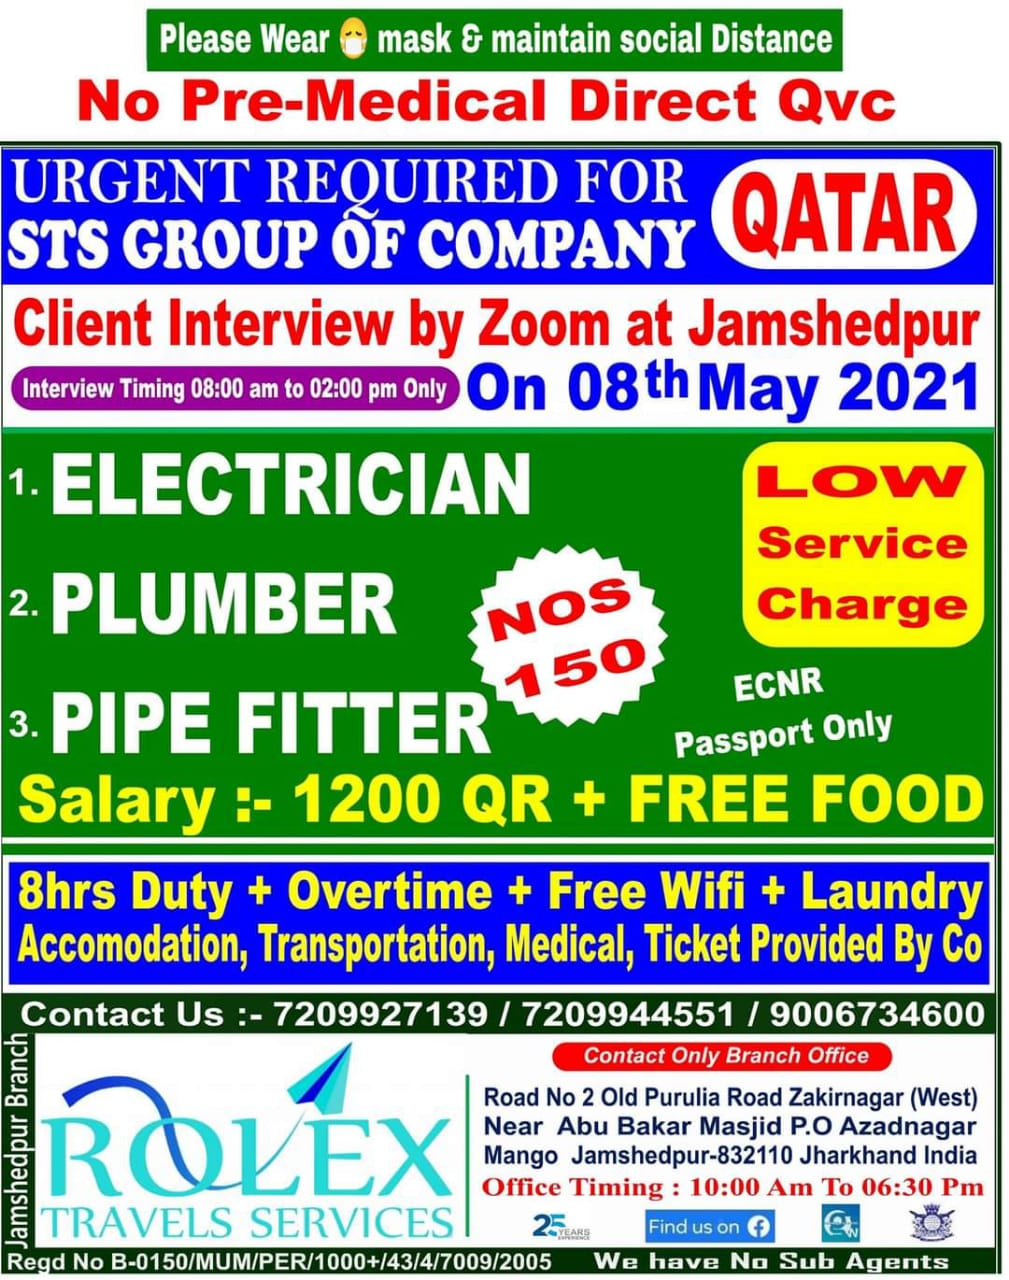 URGENTLY REQUIRED FOR STS GROUP OF COMPANY